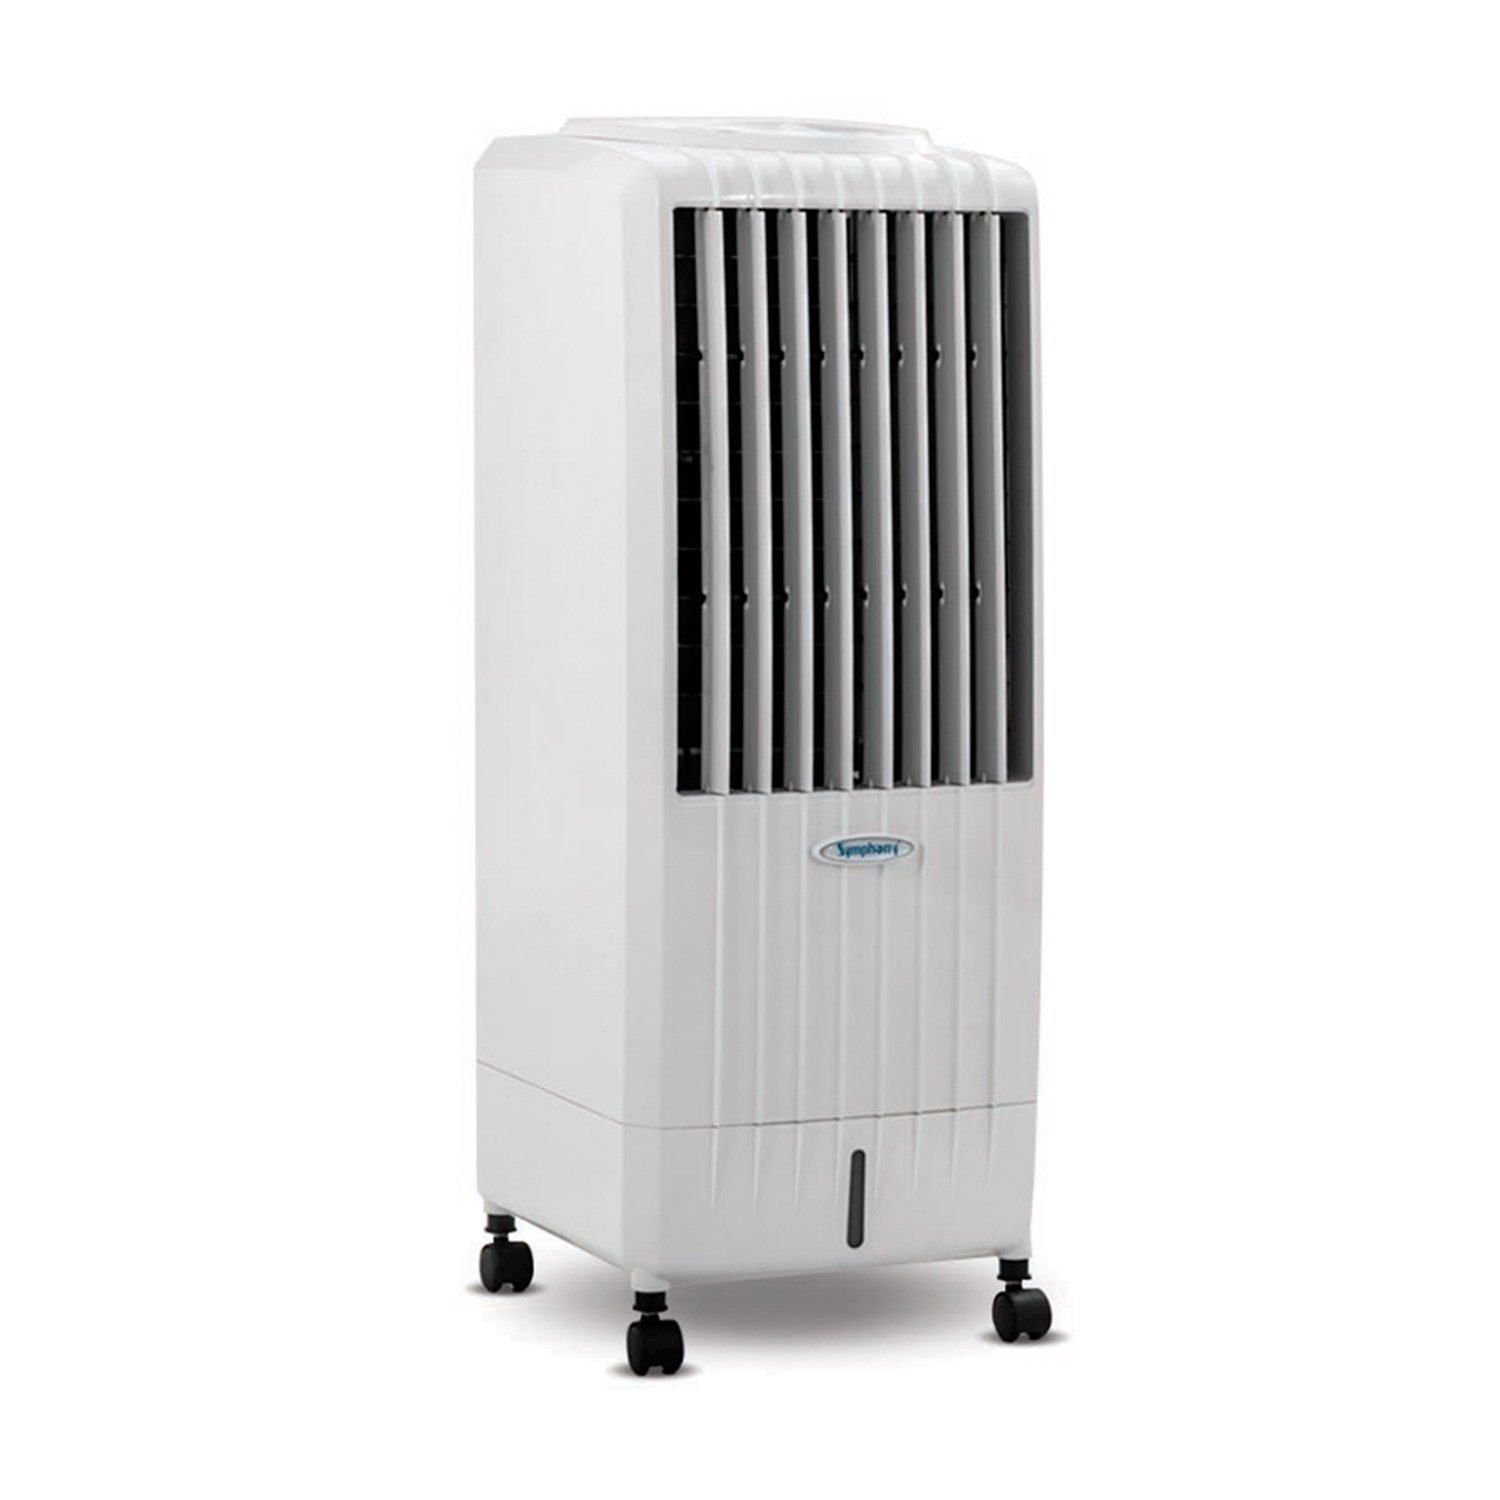 Top 5 Best Symphony Air Cooler under 8000 in India: Symphony Air Cooler